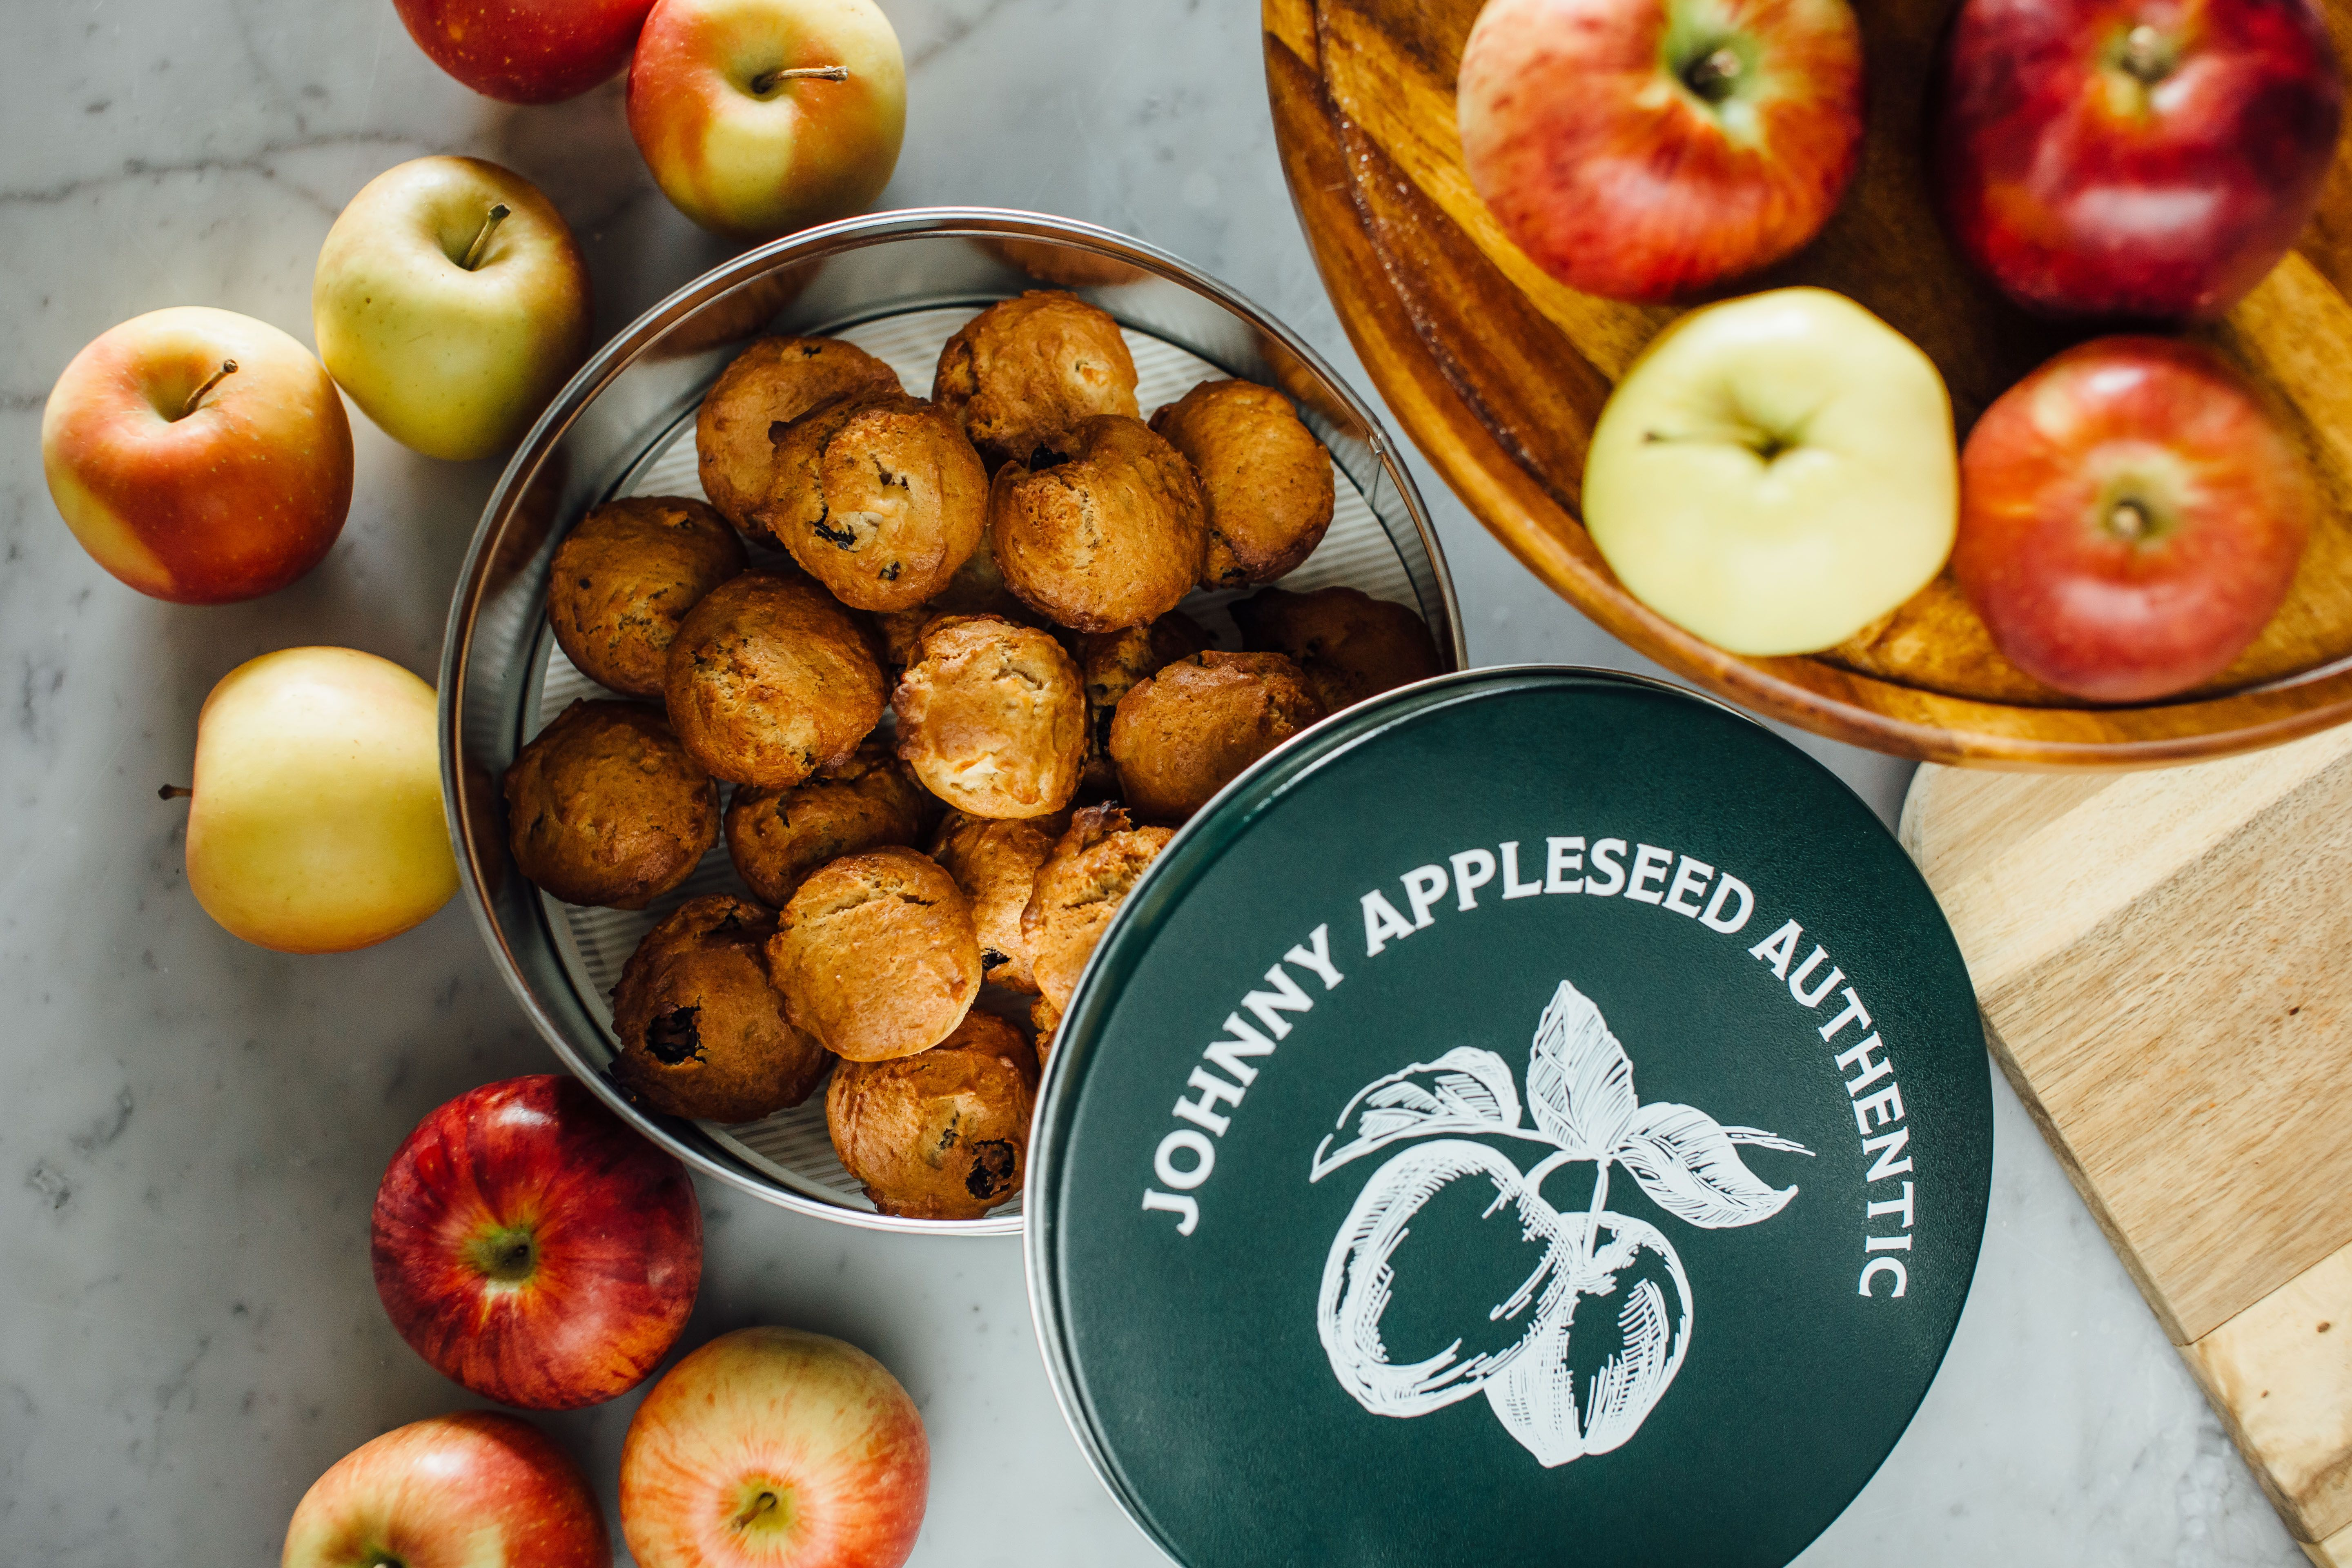 Johnny Appleseed Organic Fresh Apples